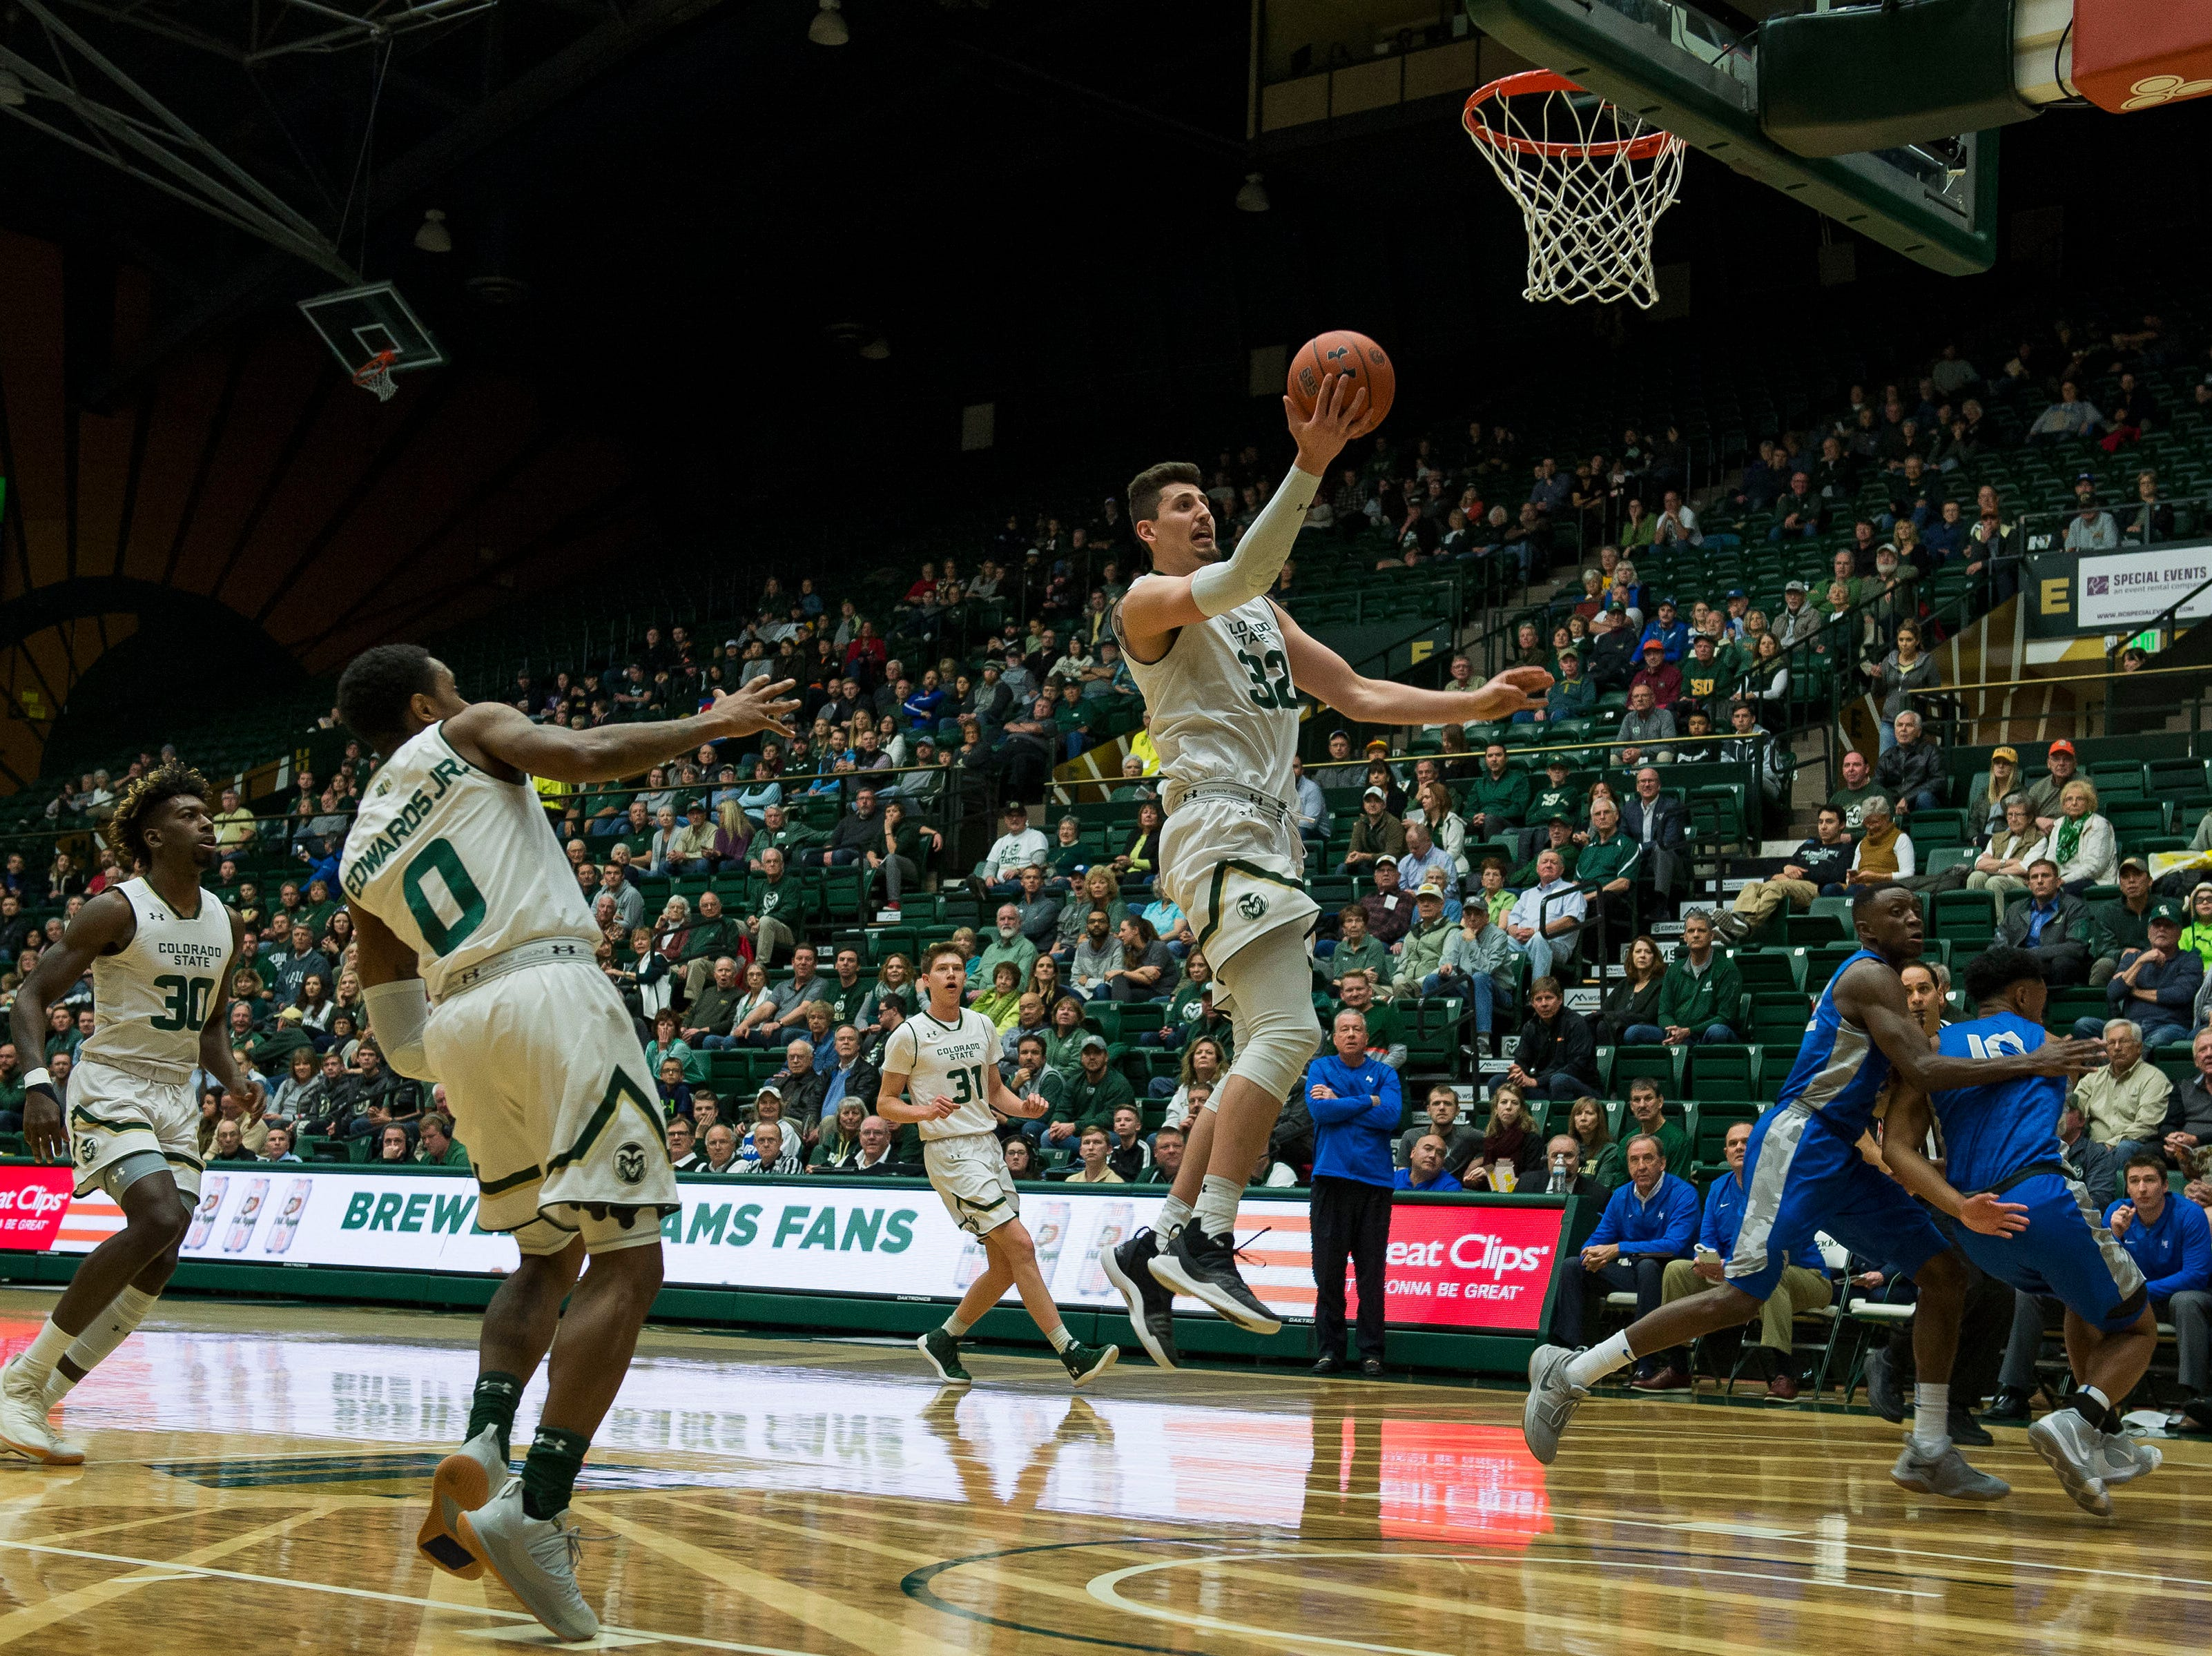 Colorado State University junior center Nico Carvacho (32) breaks free for a layup against the Air Force Academy on Tuesday, Jan. 8, 2019, at Moby Arena in Fort Collins, Colo.